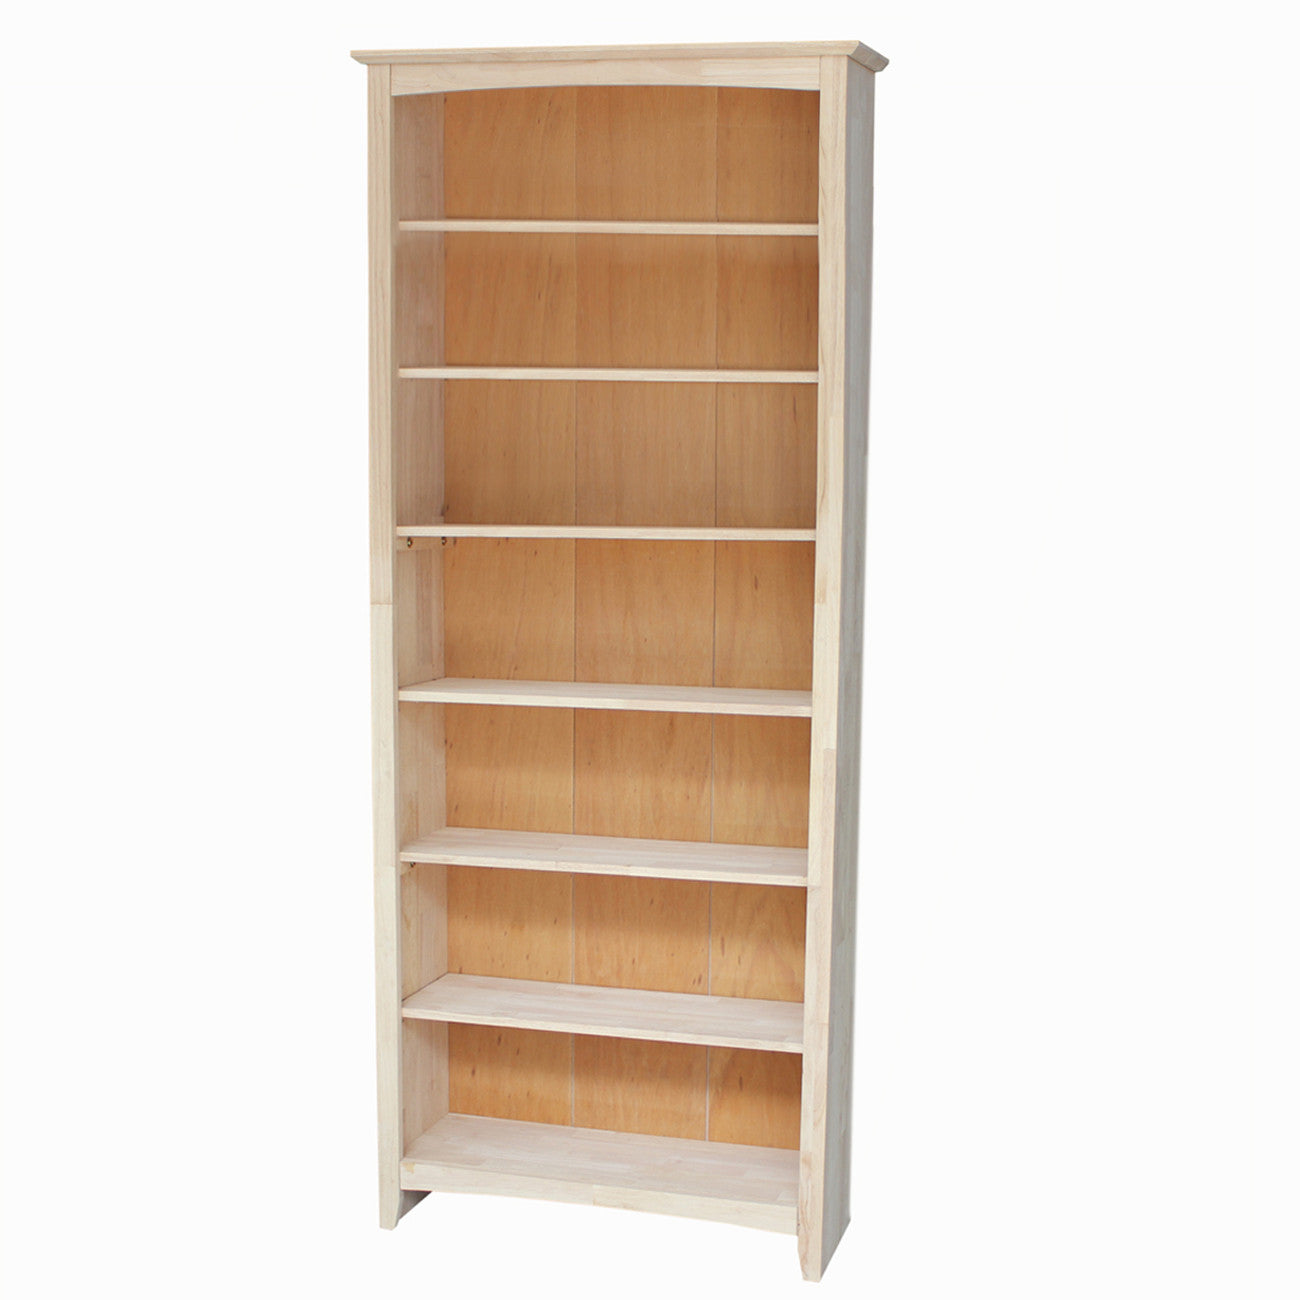 Shaker Hardwood Bookcase 32 Quot W X 84 Quot T Free Shipping